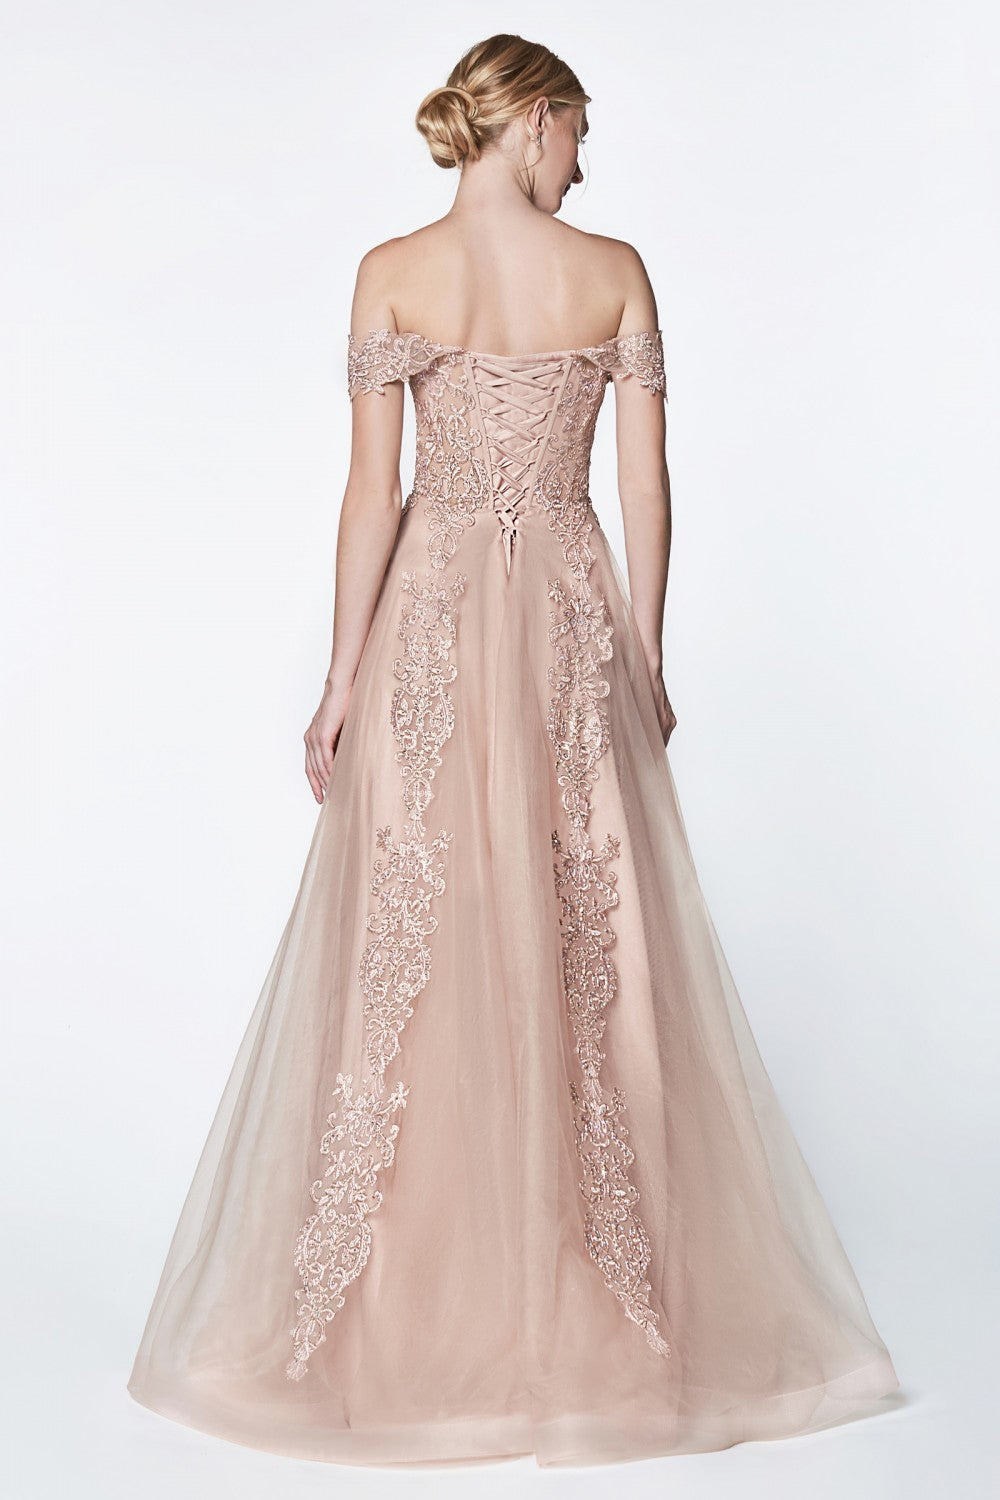 Off The Shoulder Embelished Lace A-Line Tulle Gown With Lace Up Back